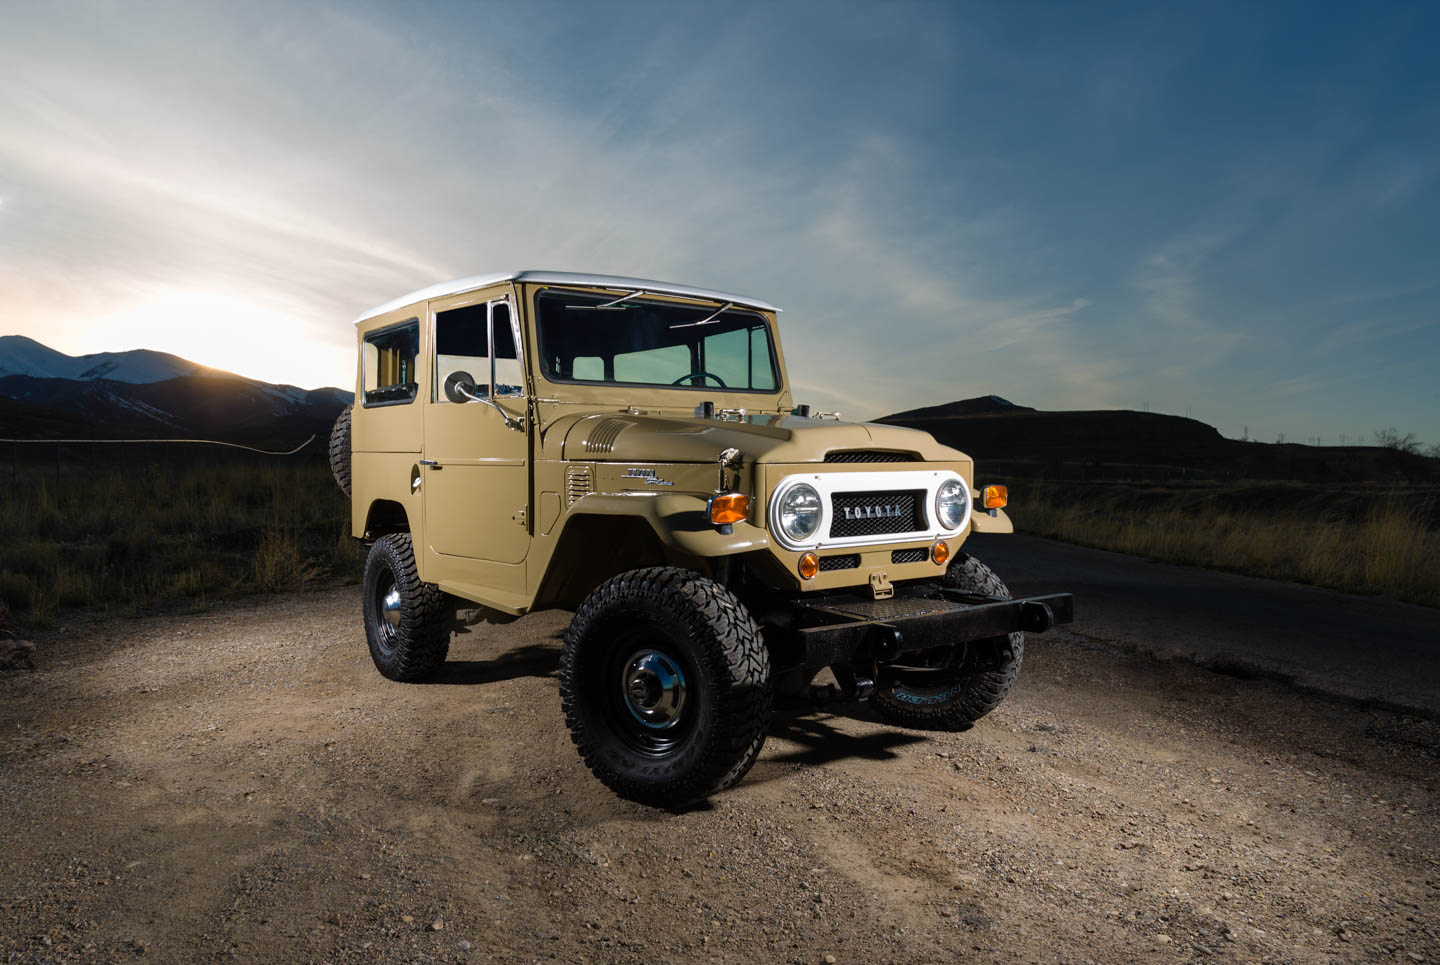 Restored Quicksand Toyota Land Cruiser | dav d photography